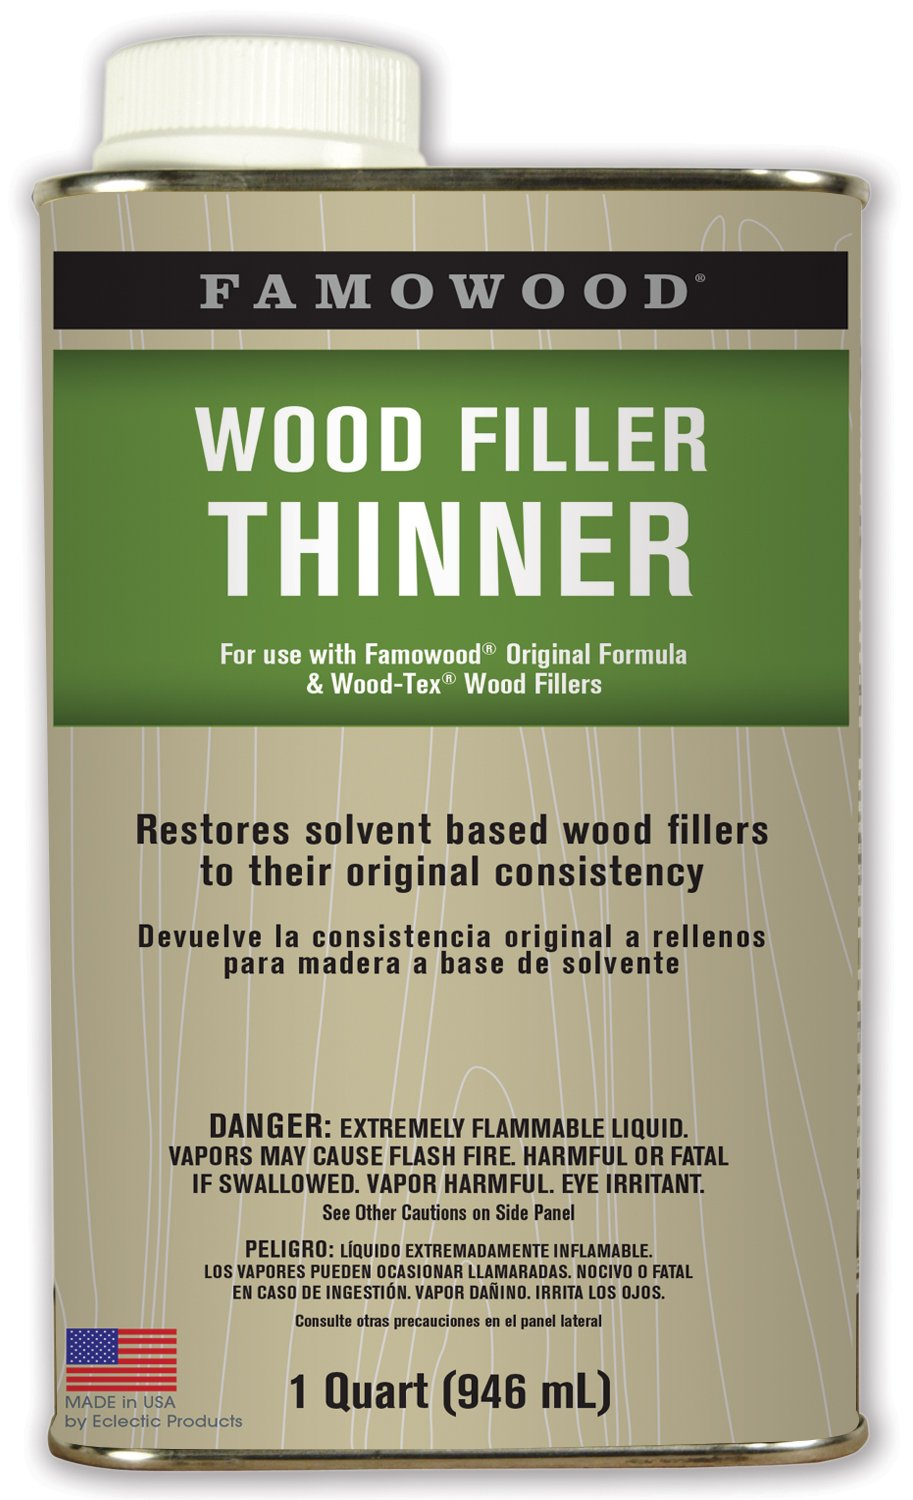 FamoWood 730011 Wood Filler Thinner - Quart by FamoWood (Image #1)